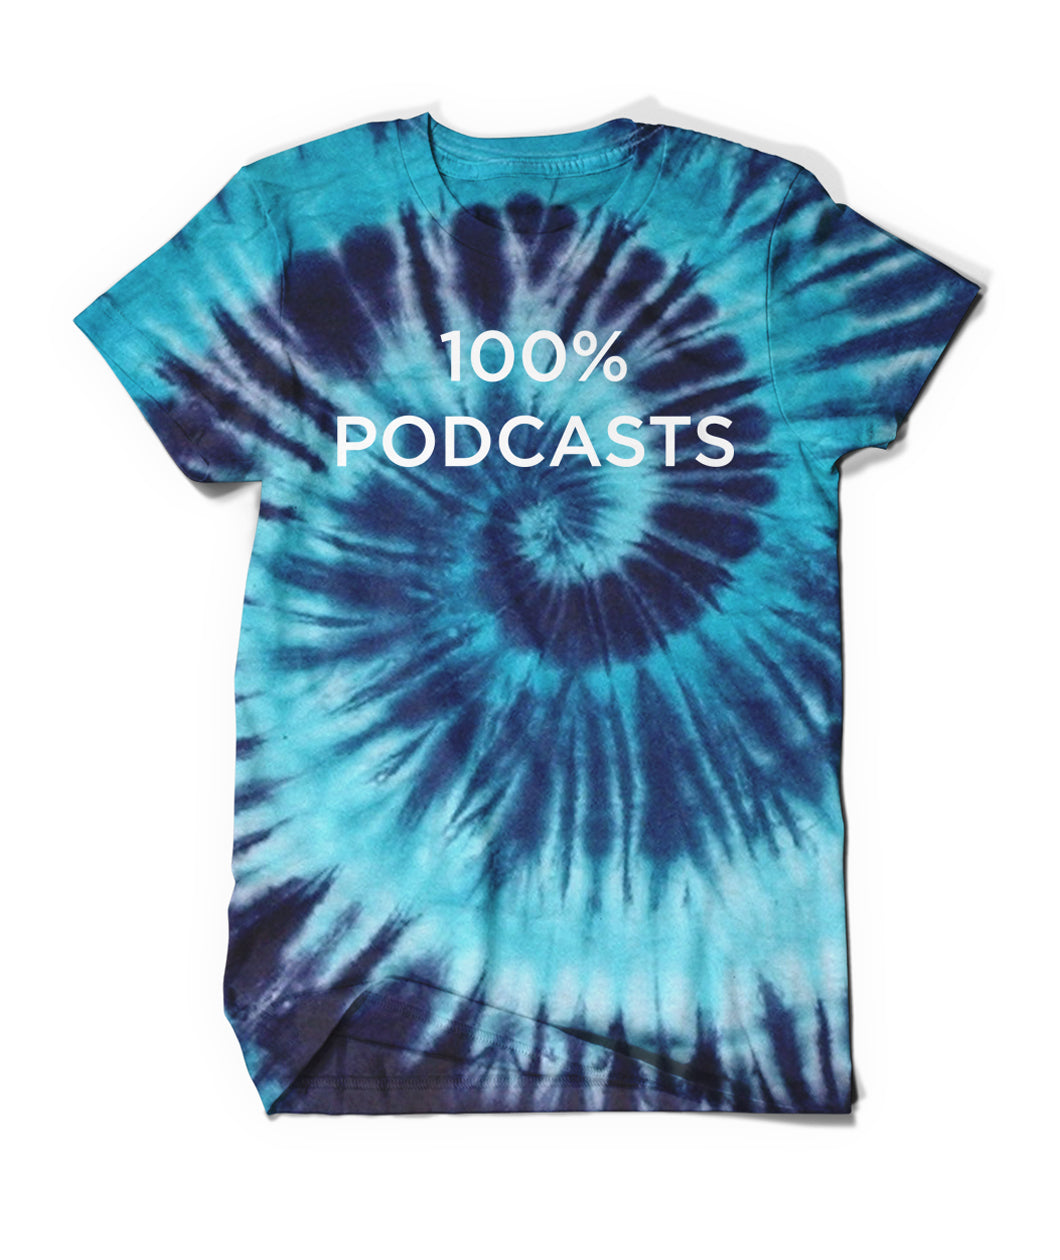 100 % Podcasts Shirt